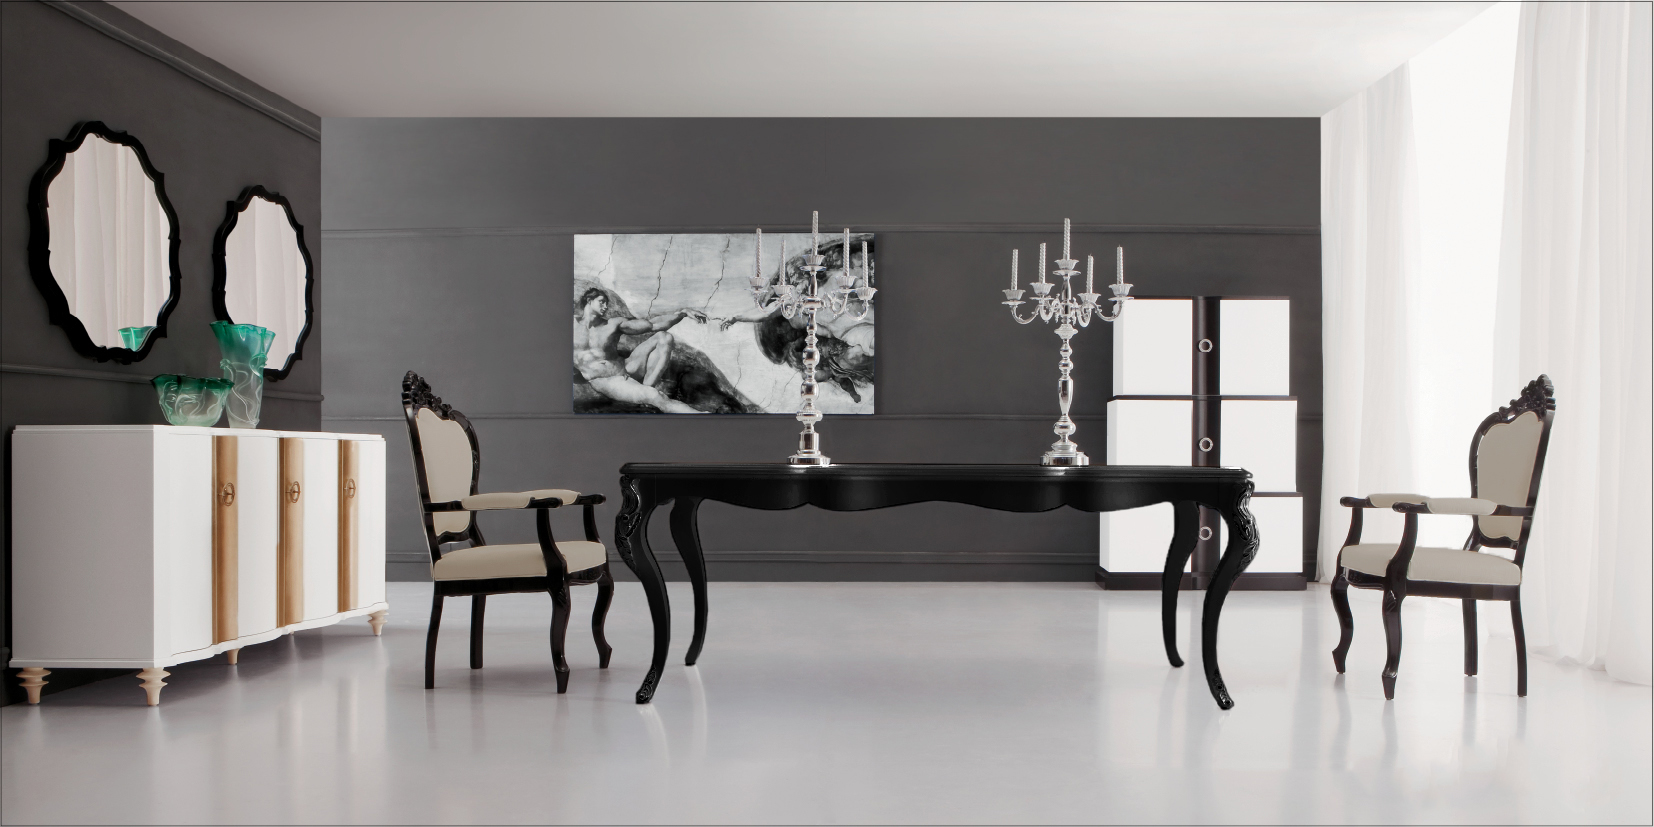 Black Dining Table Modern dining table Angelina : Modern Dining Table Angelina Black2b1 from www.theinteriorgallery.com size 1654 x 827 jpeg 591kB